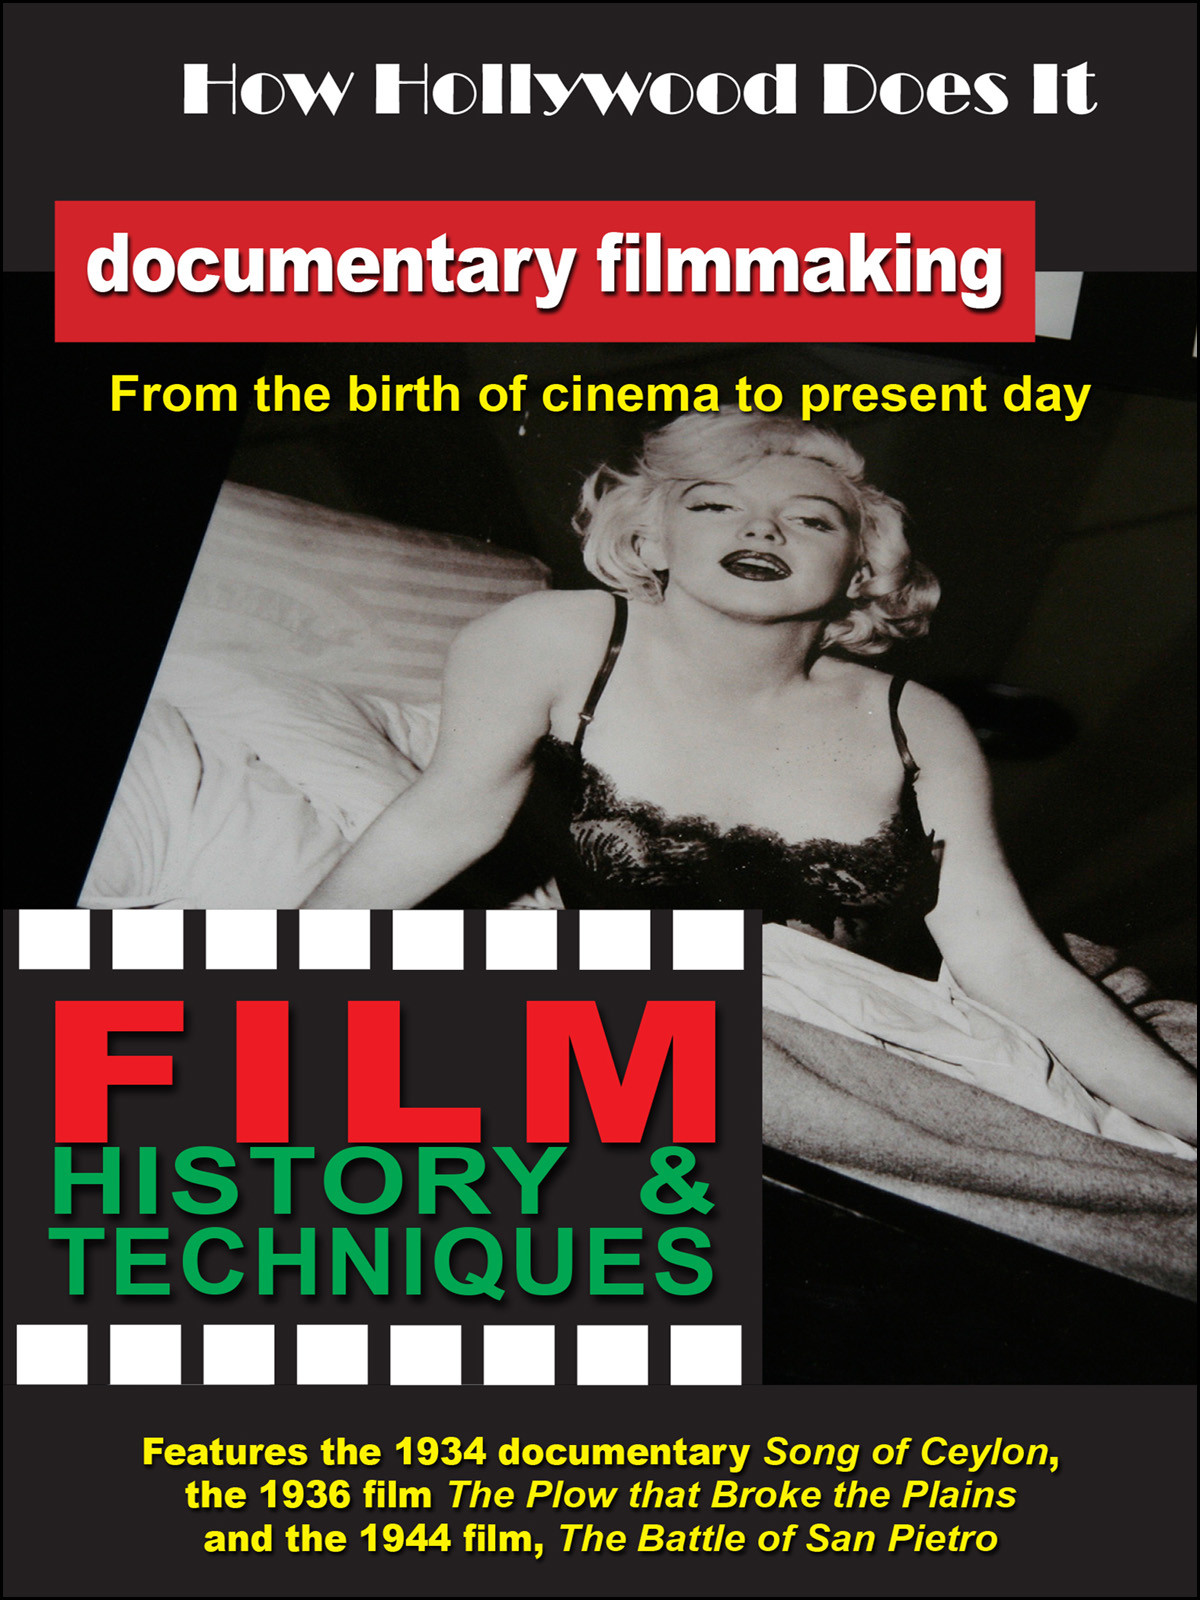 F2715 - How Hollywood Does It - Film History & Techniques of Documentary Filmmaking